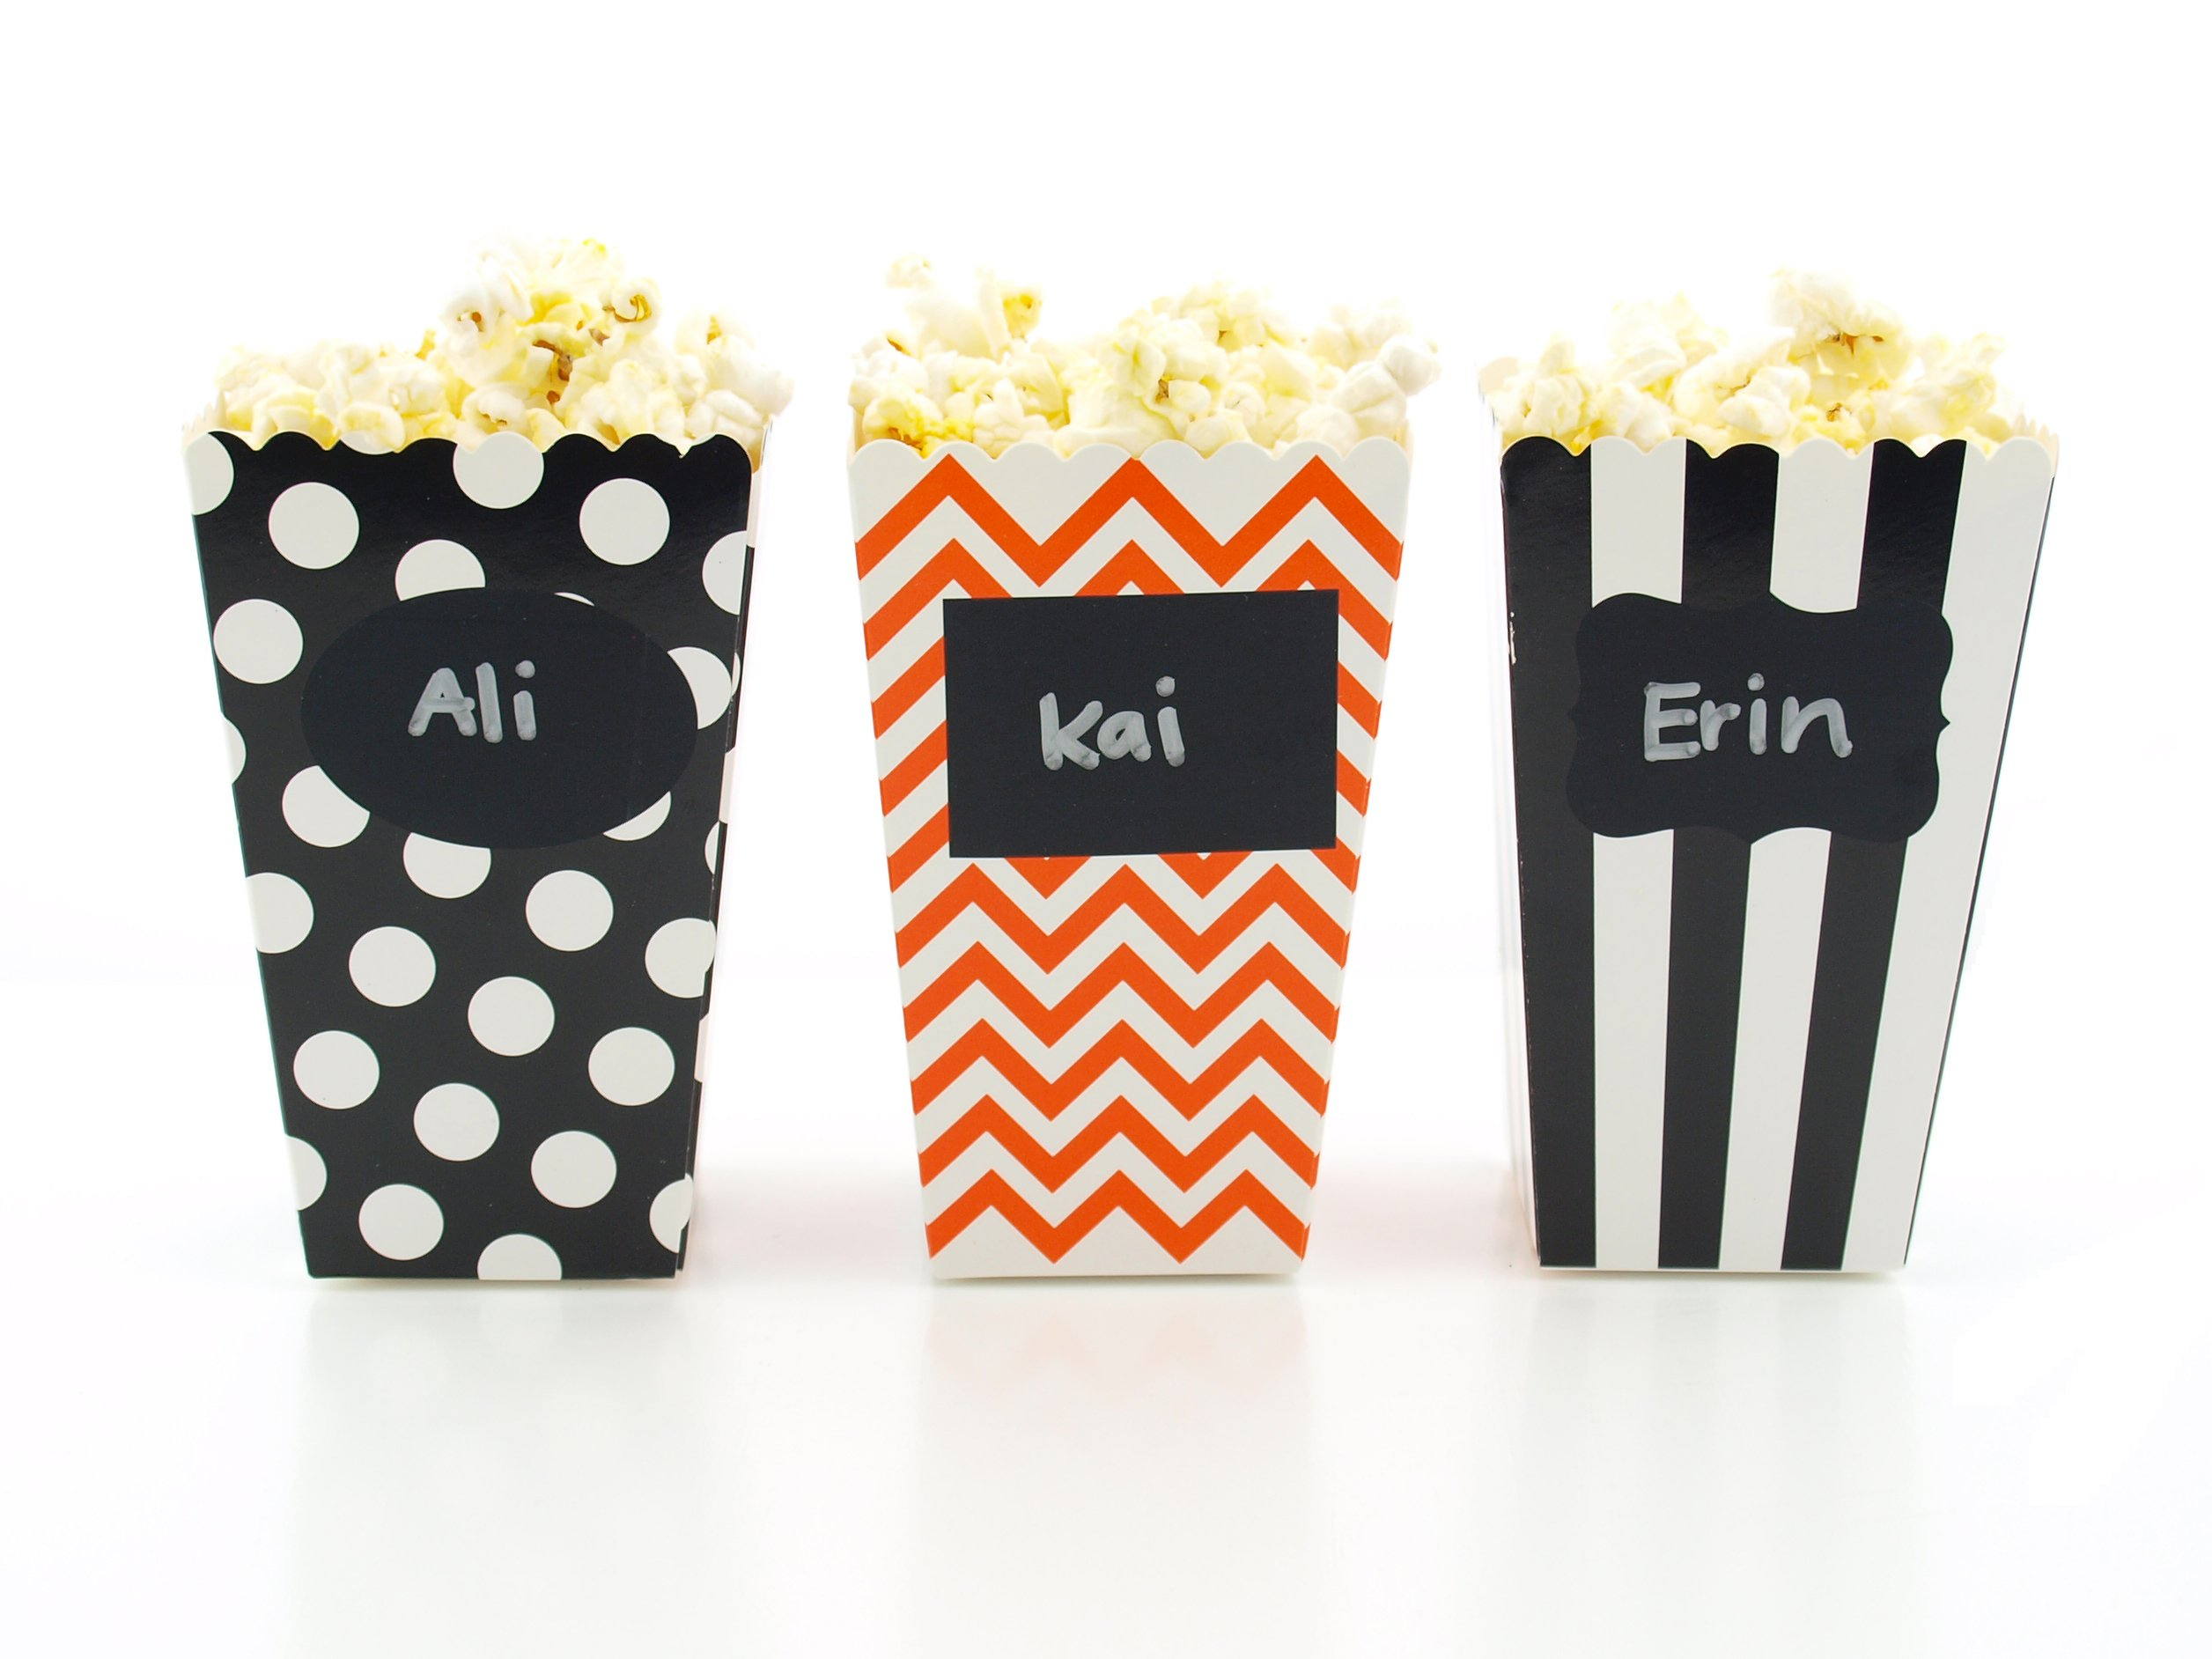 Halloween Party Popcorn Boxes & Black Label Chalkboard Vinyl Stickers (36 Pack) - Black & Pumpkin Orange Halloween Party Favors, Small Movie Theatre Popcorn Tubs for Halloween Party Supplies by Food with Fashion